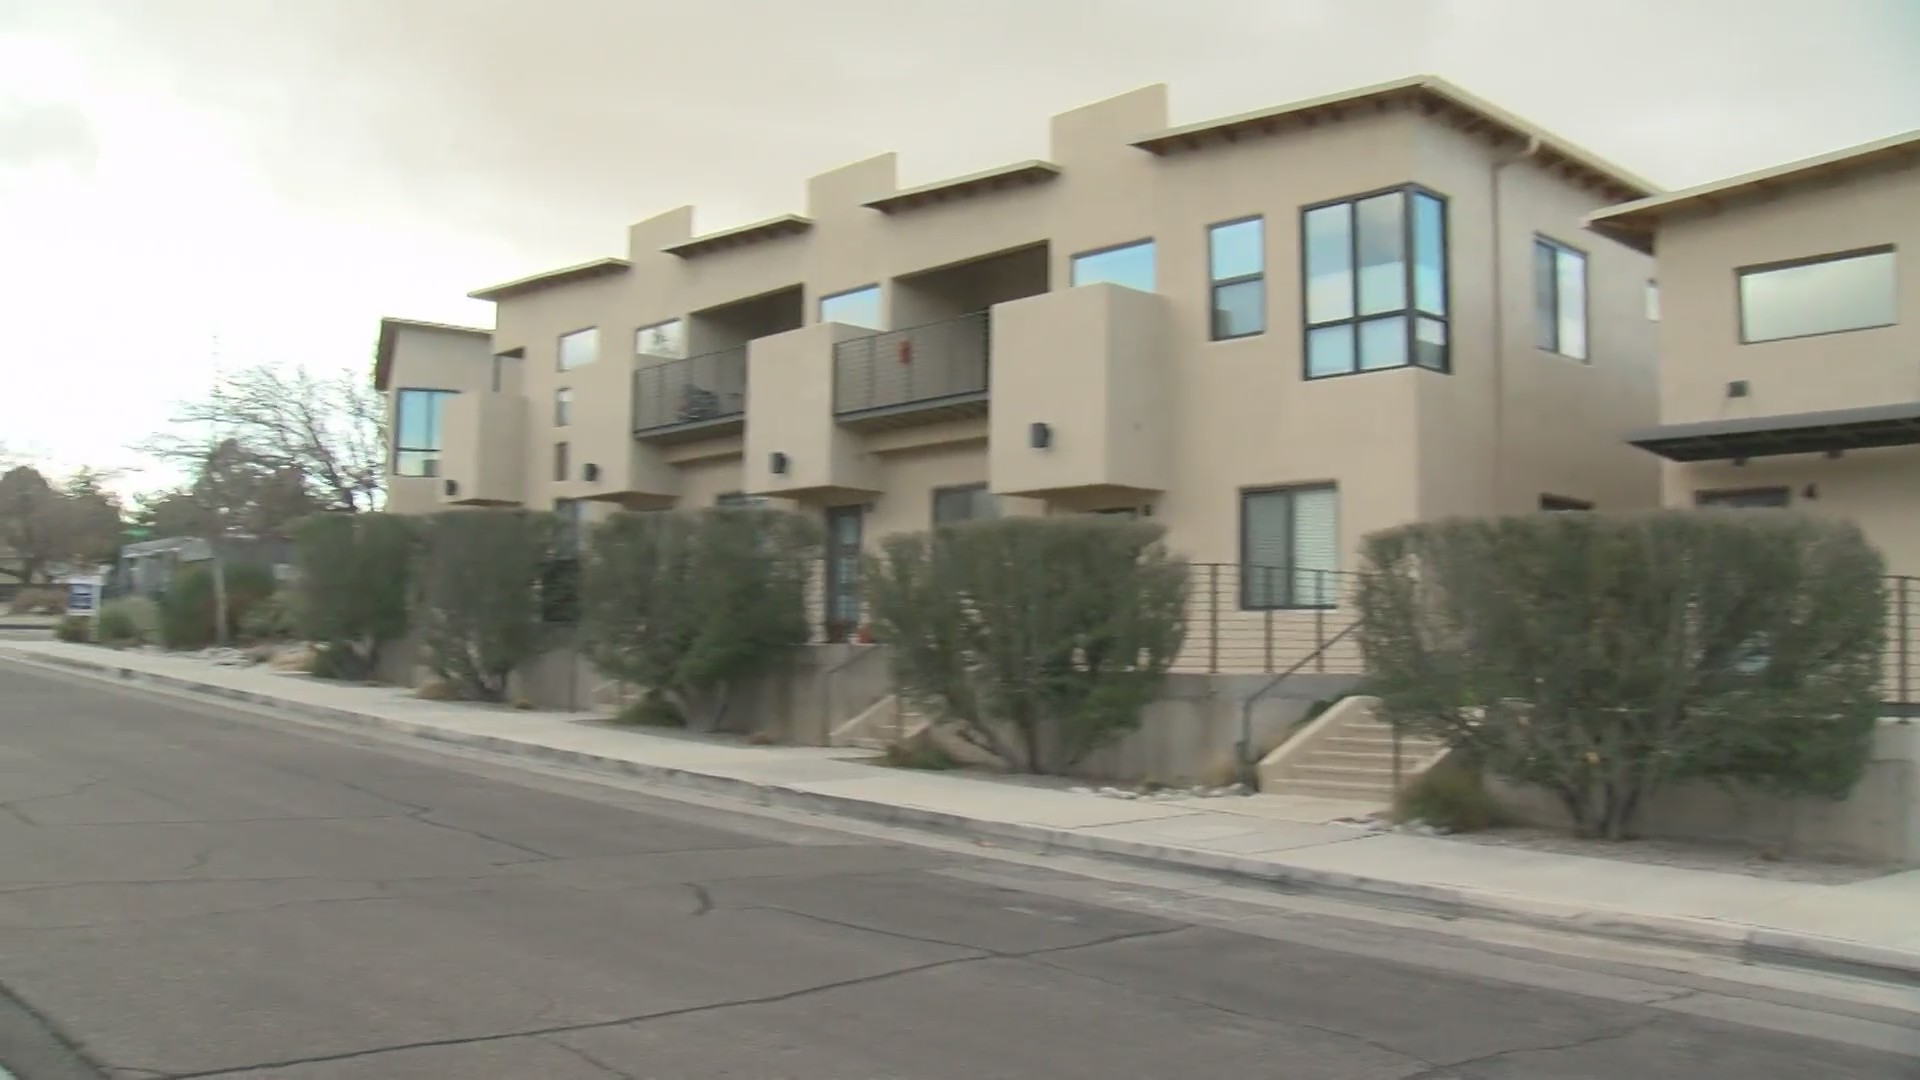 Man Finds His Condo Listed For Rent On Craigslist Krqe News 13